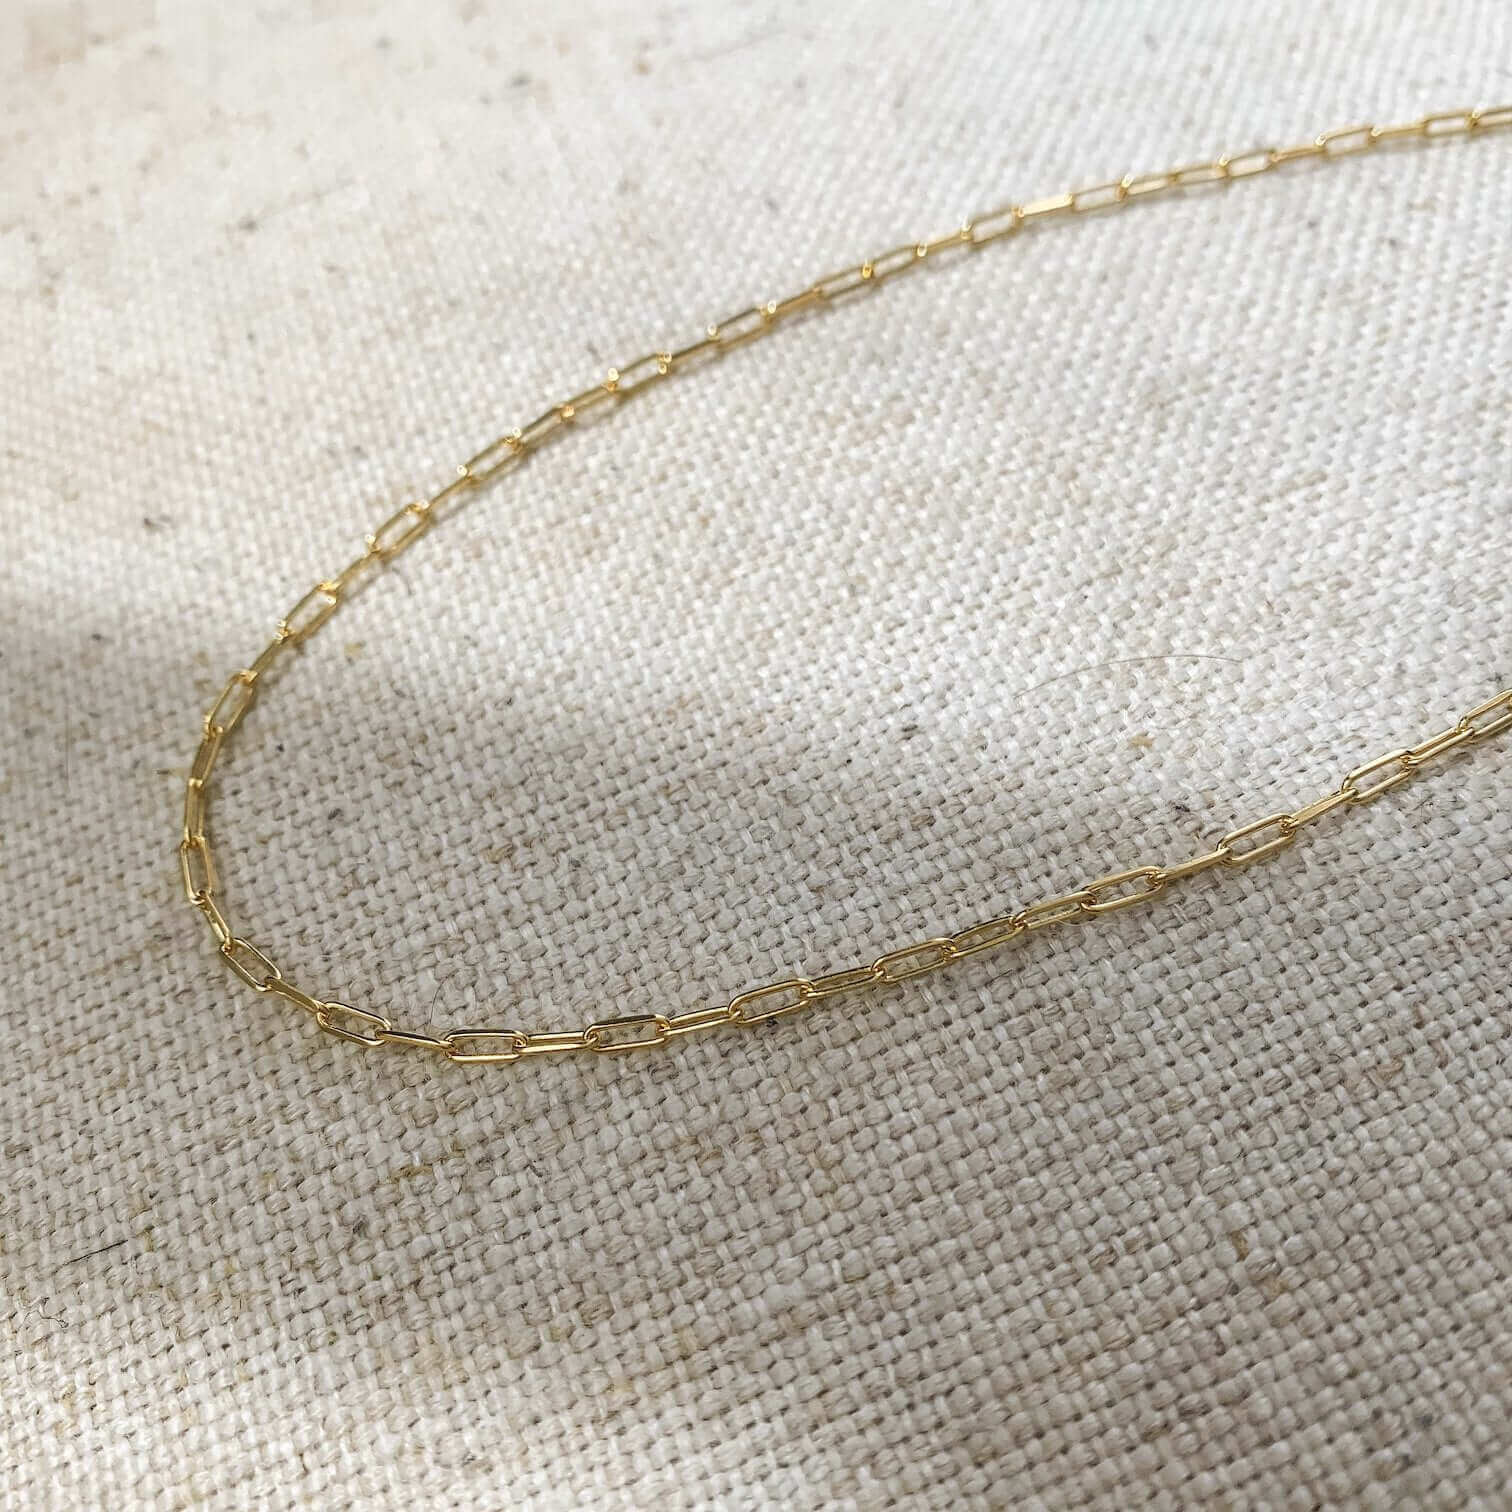 14k gold paper clip necklace chain lay flat photo kemmi collection jewelry boho chic